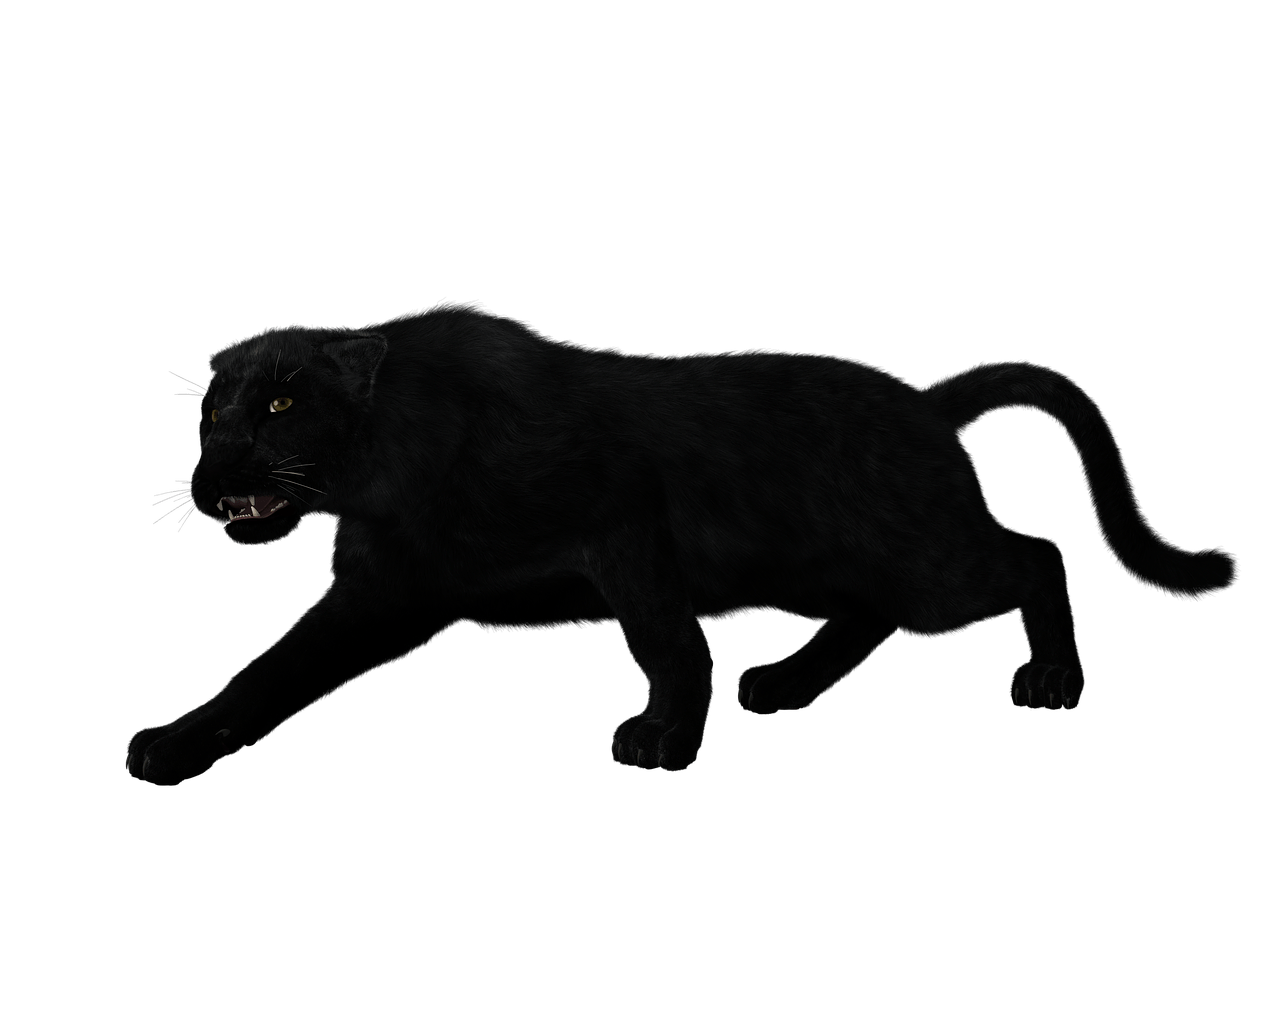 Panther png. Black full body transparent